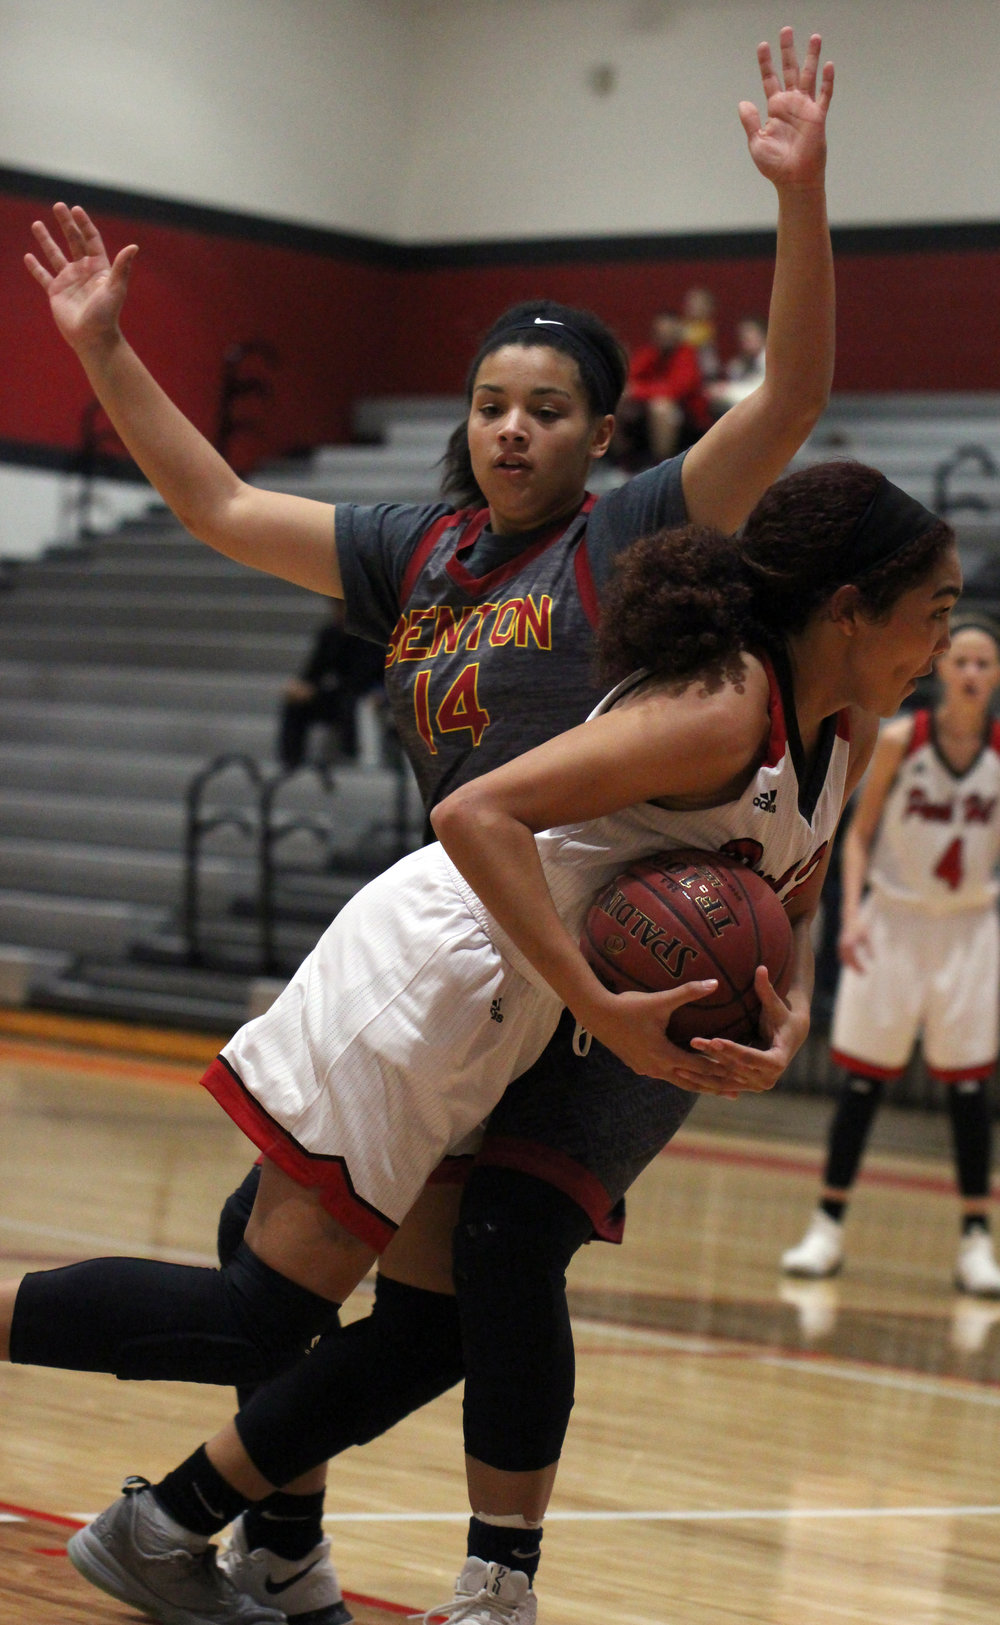 ROSS MARTIN/Citizen photo Park Hill junior Aleece Noble (front) draws a foul against Benton on Thursday, Dec. 7 at Park Hill High School in Kansas City, Mo.